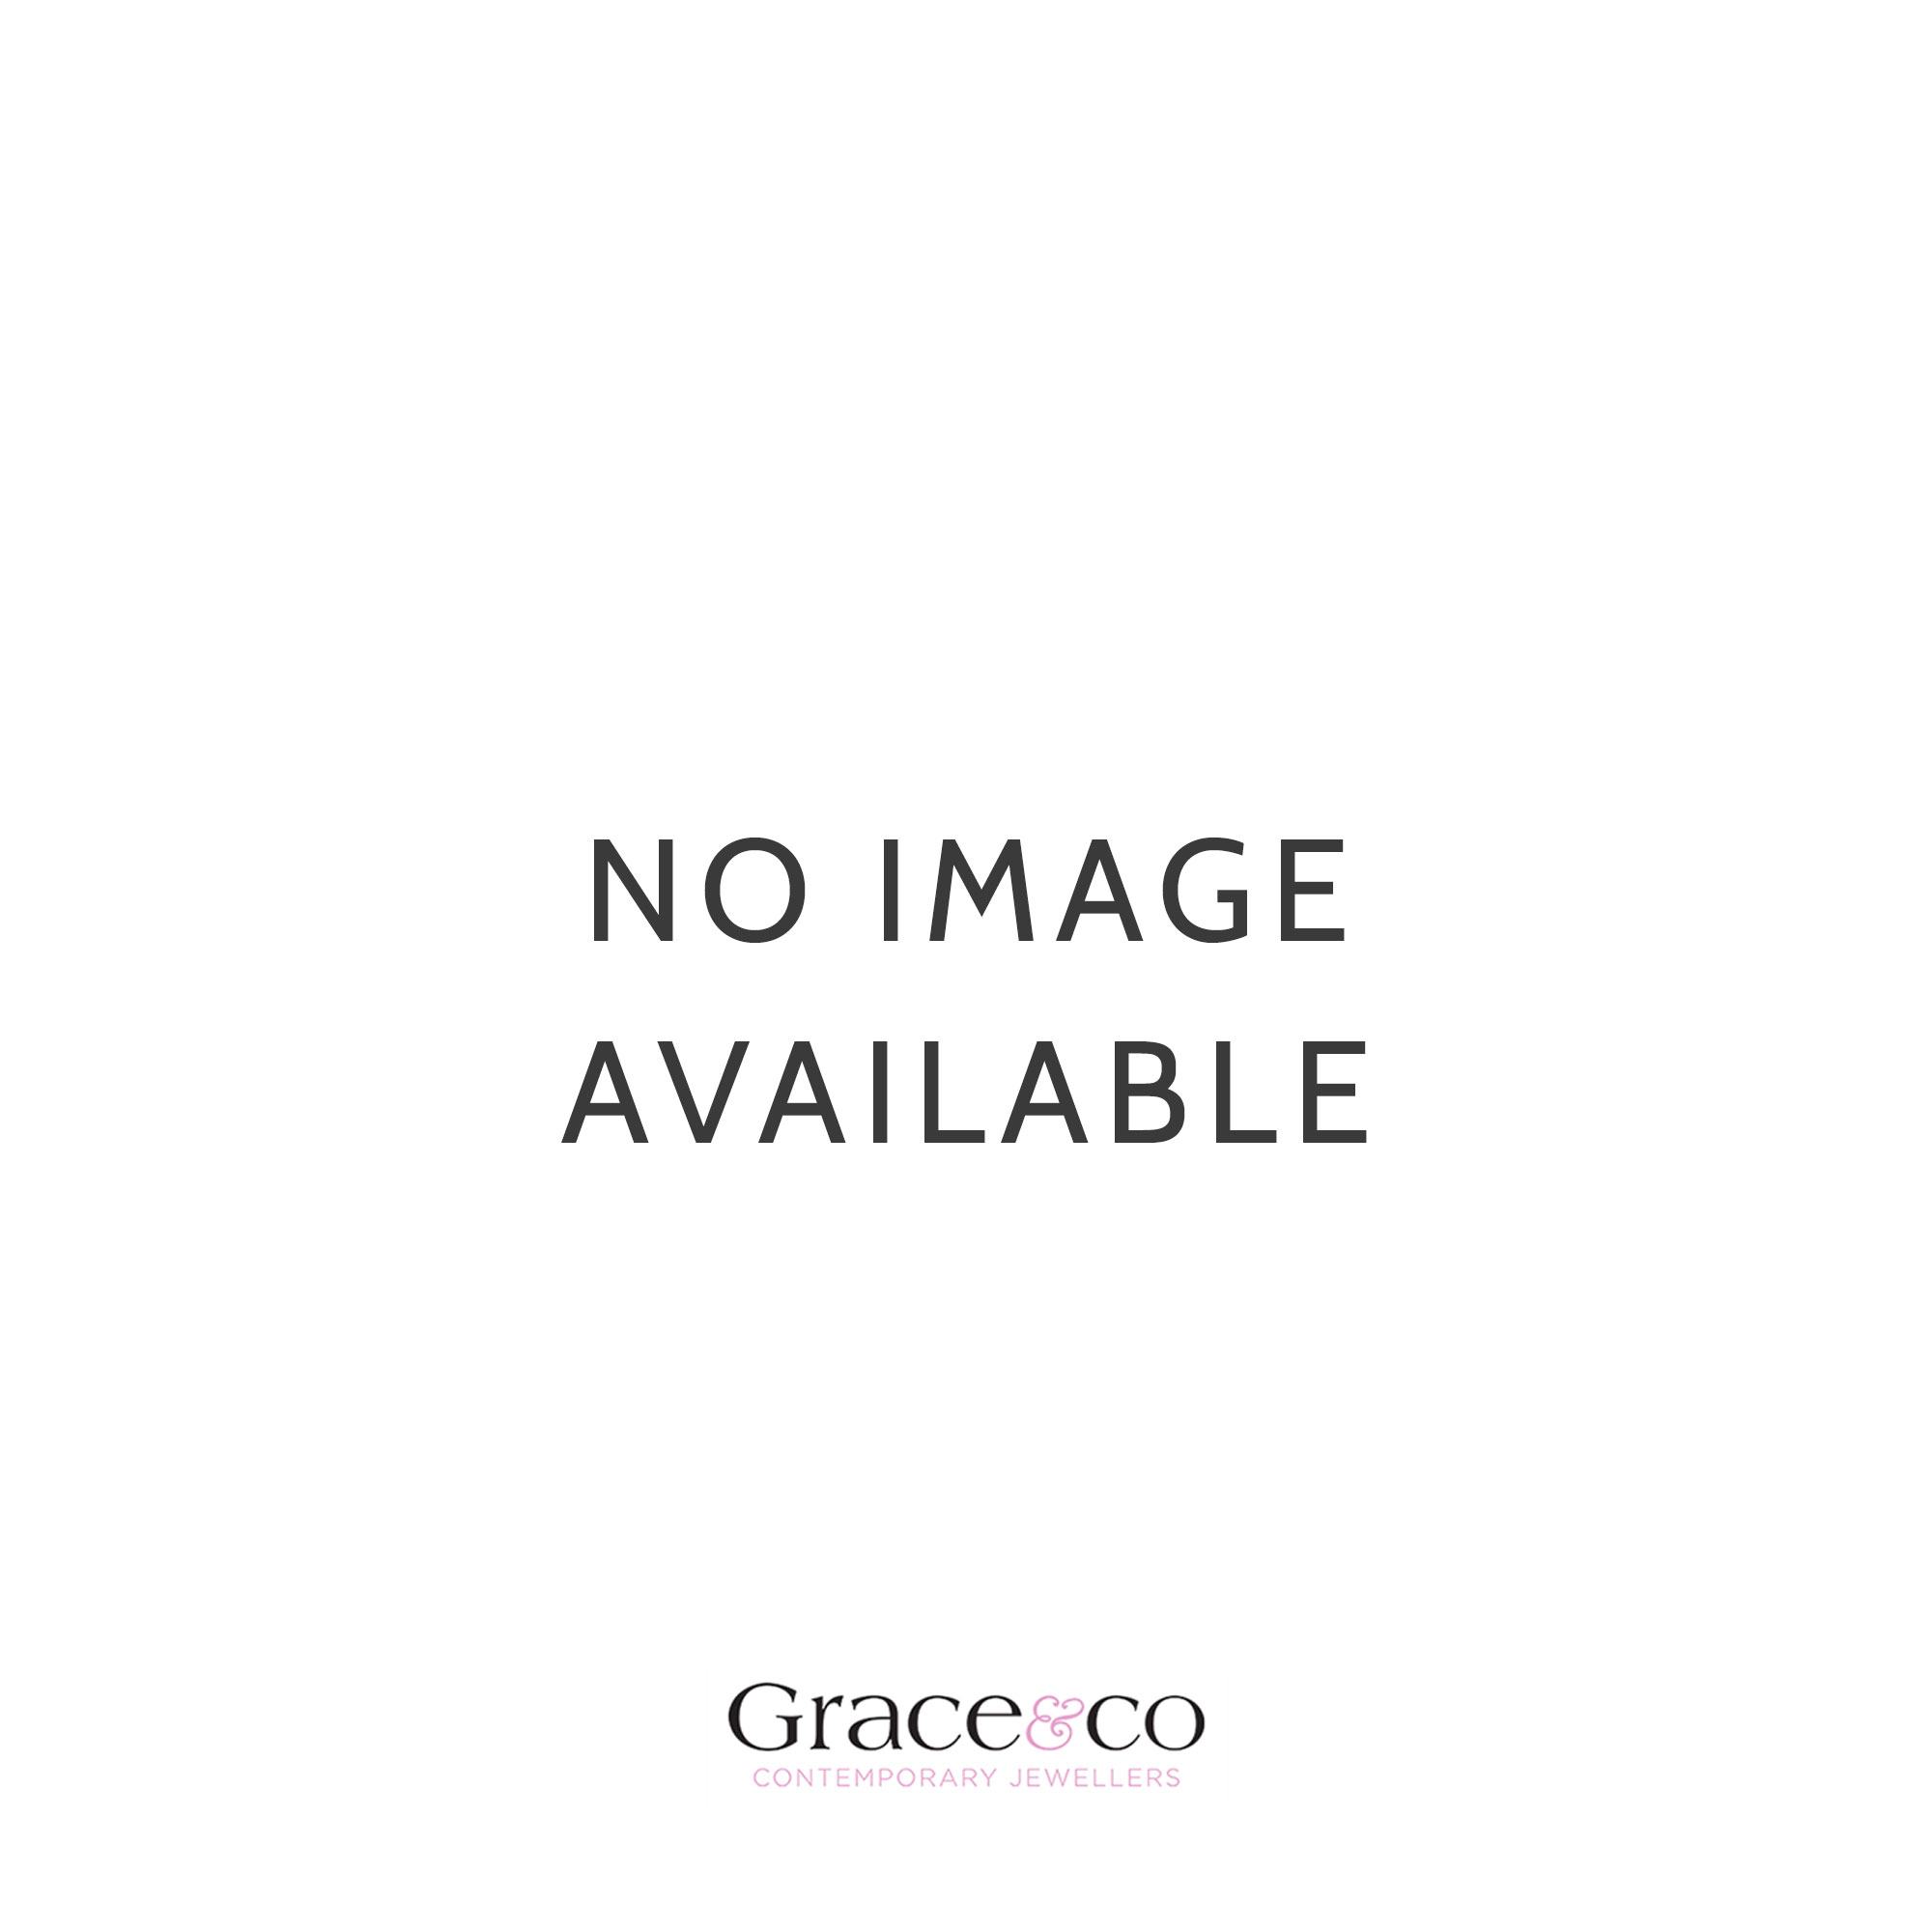 Classic Charm Bracelet in Silver, Size: 15.5cm